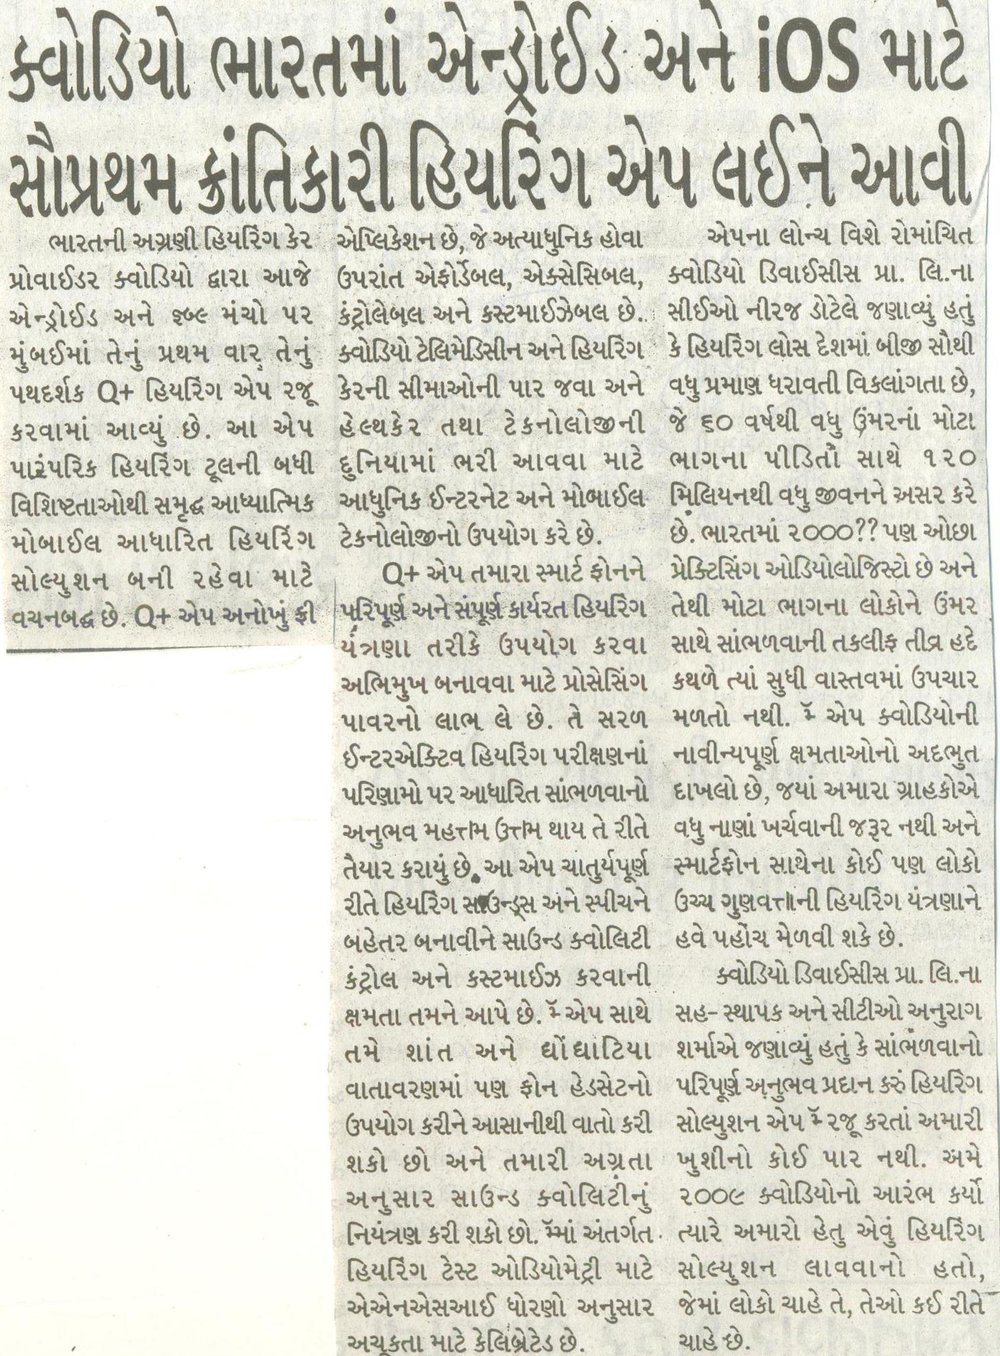 PRABHAT AHMEDABAD 20th MAY